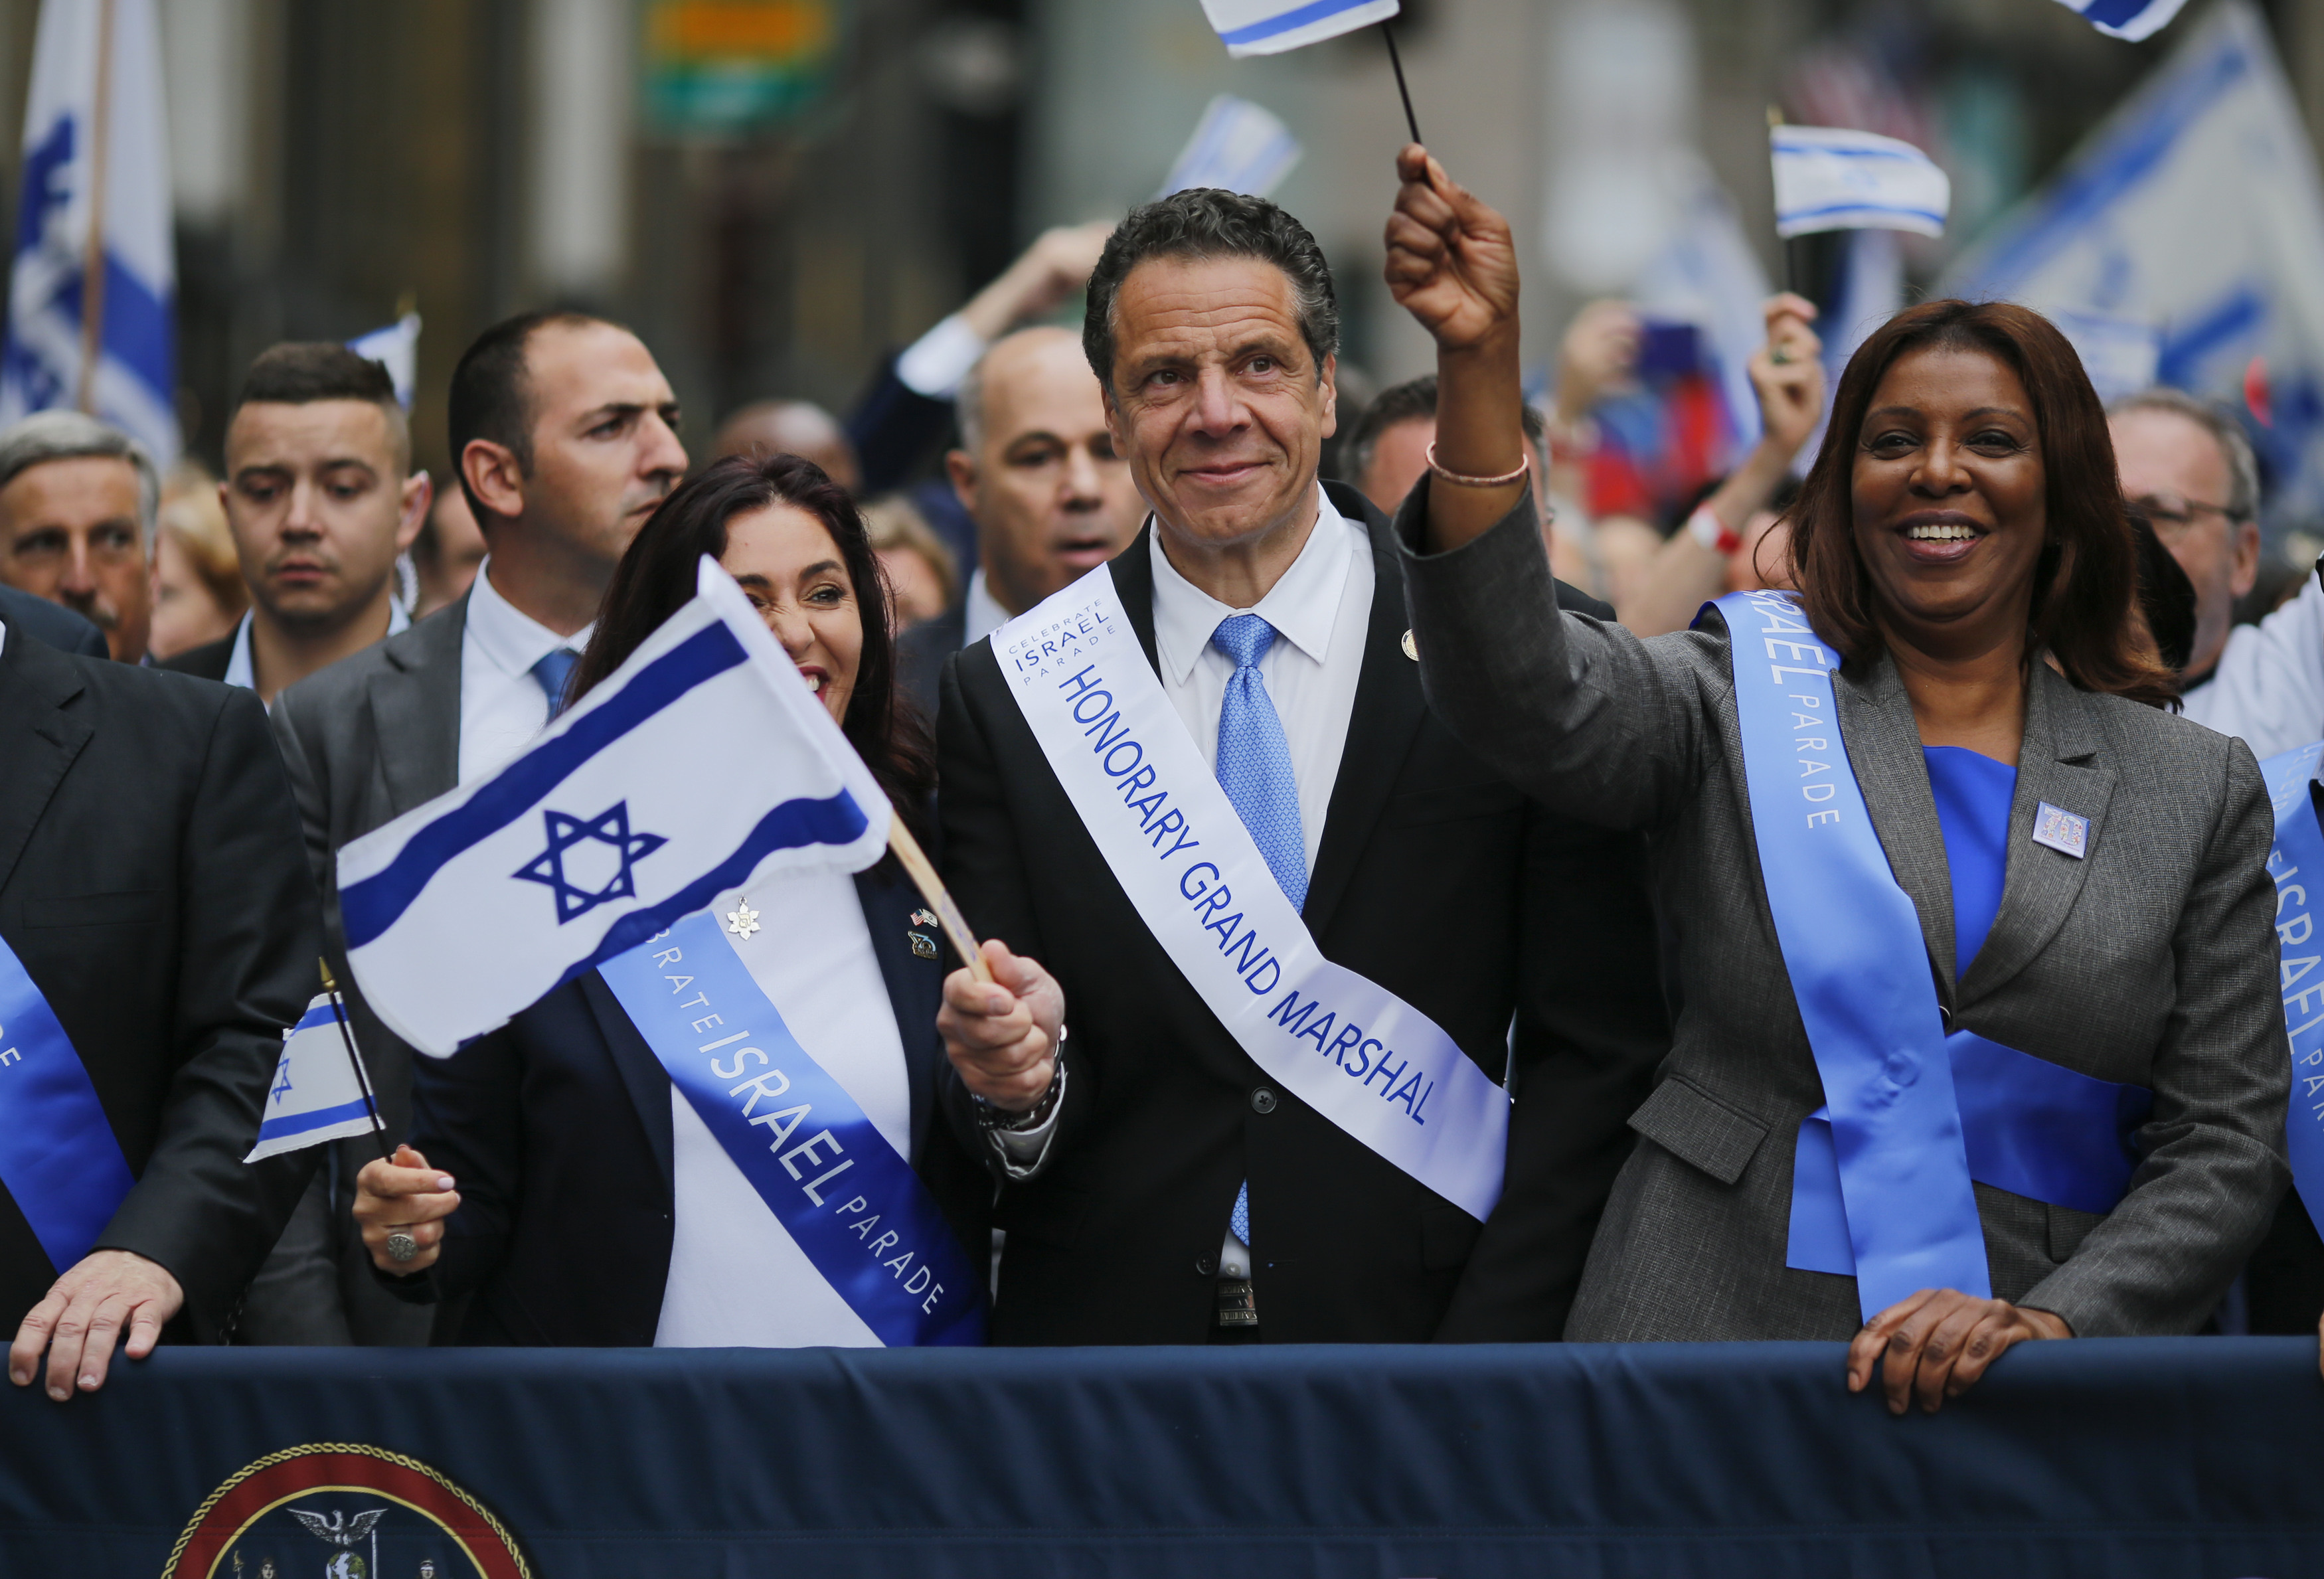 NEW YORK, NY - New York Governor Andrew Cuomo marches during the annual Celebrate Israel Parade on June 3, 2018 in New York City. (Kena Betancur/Getty Images/AFP)